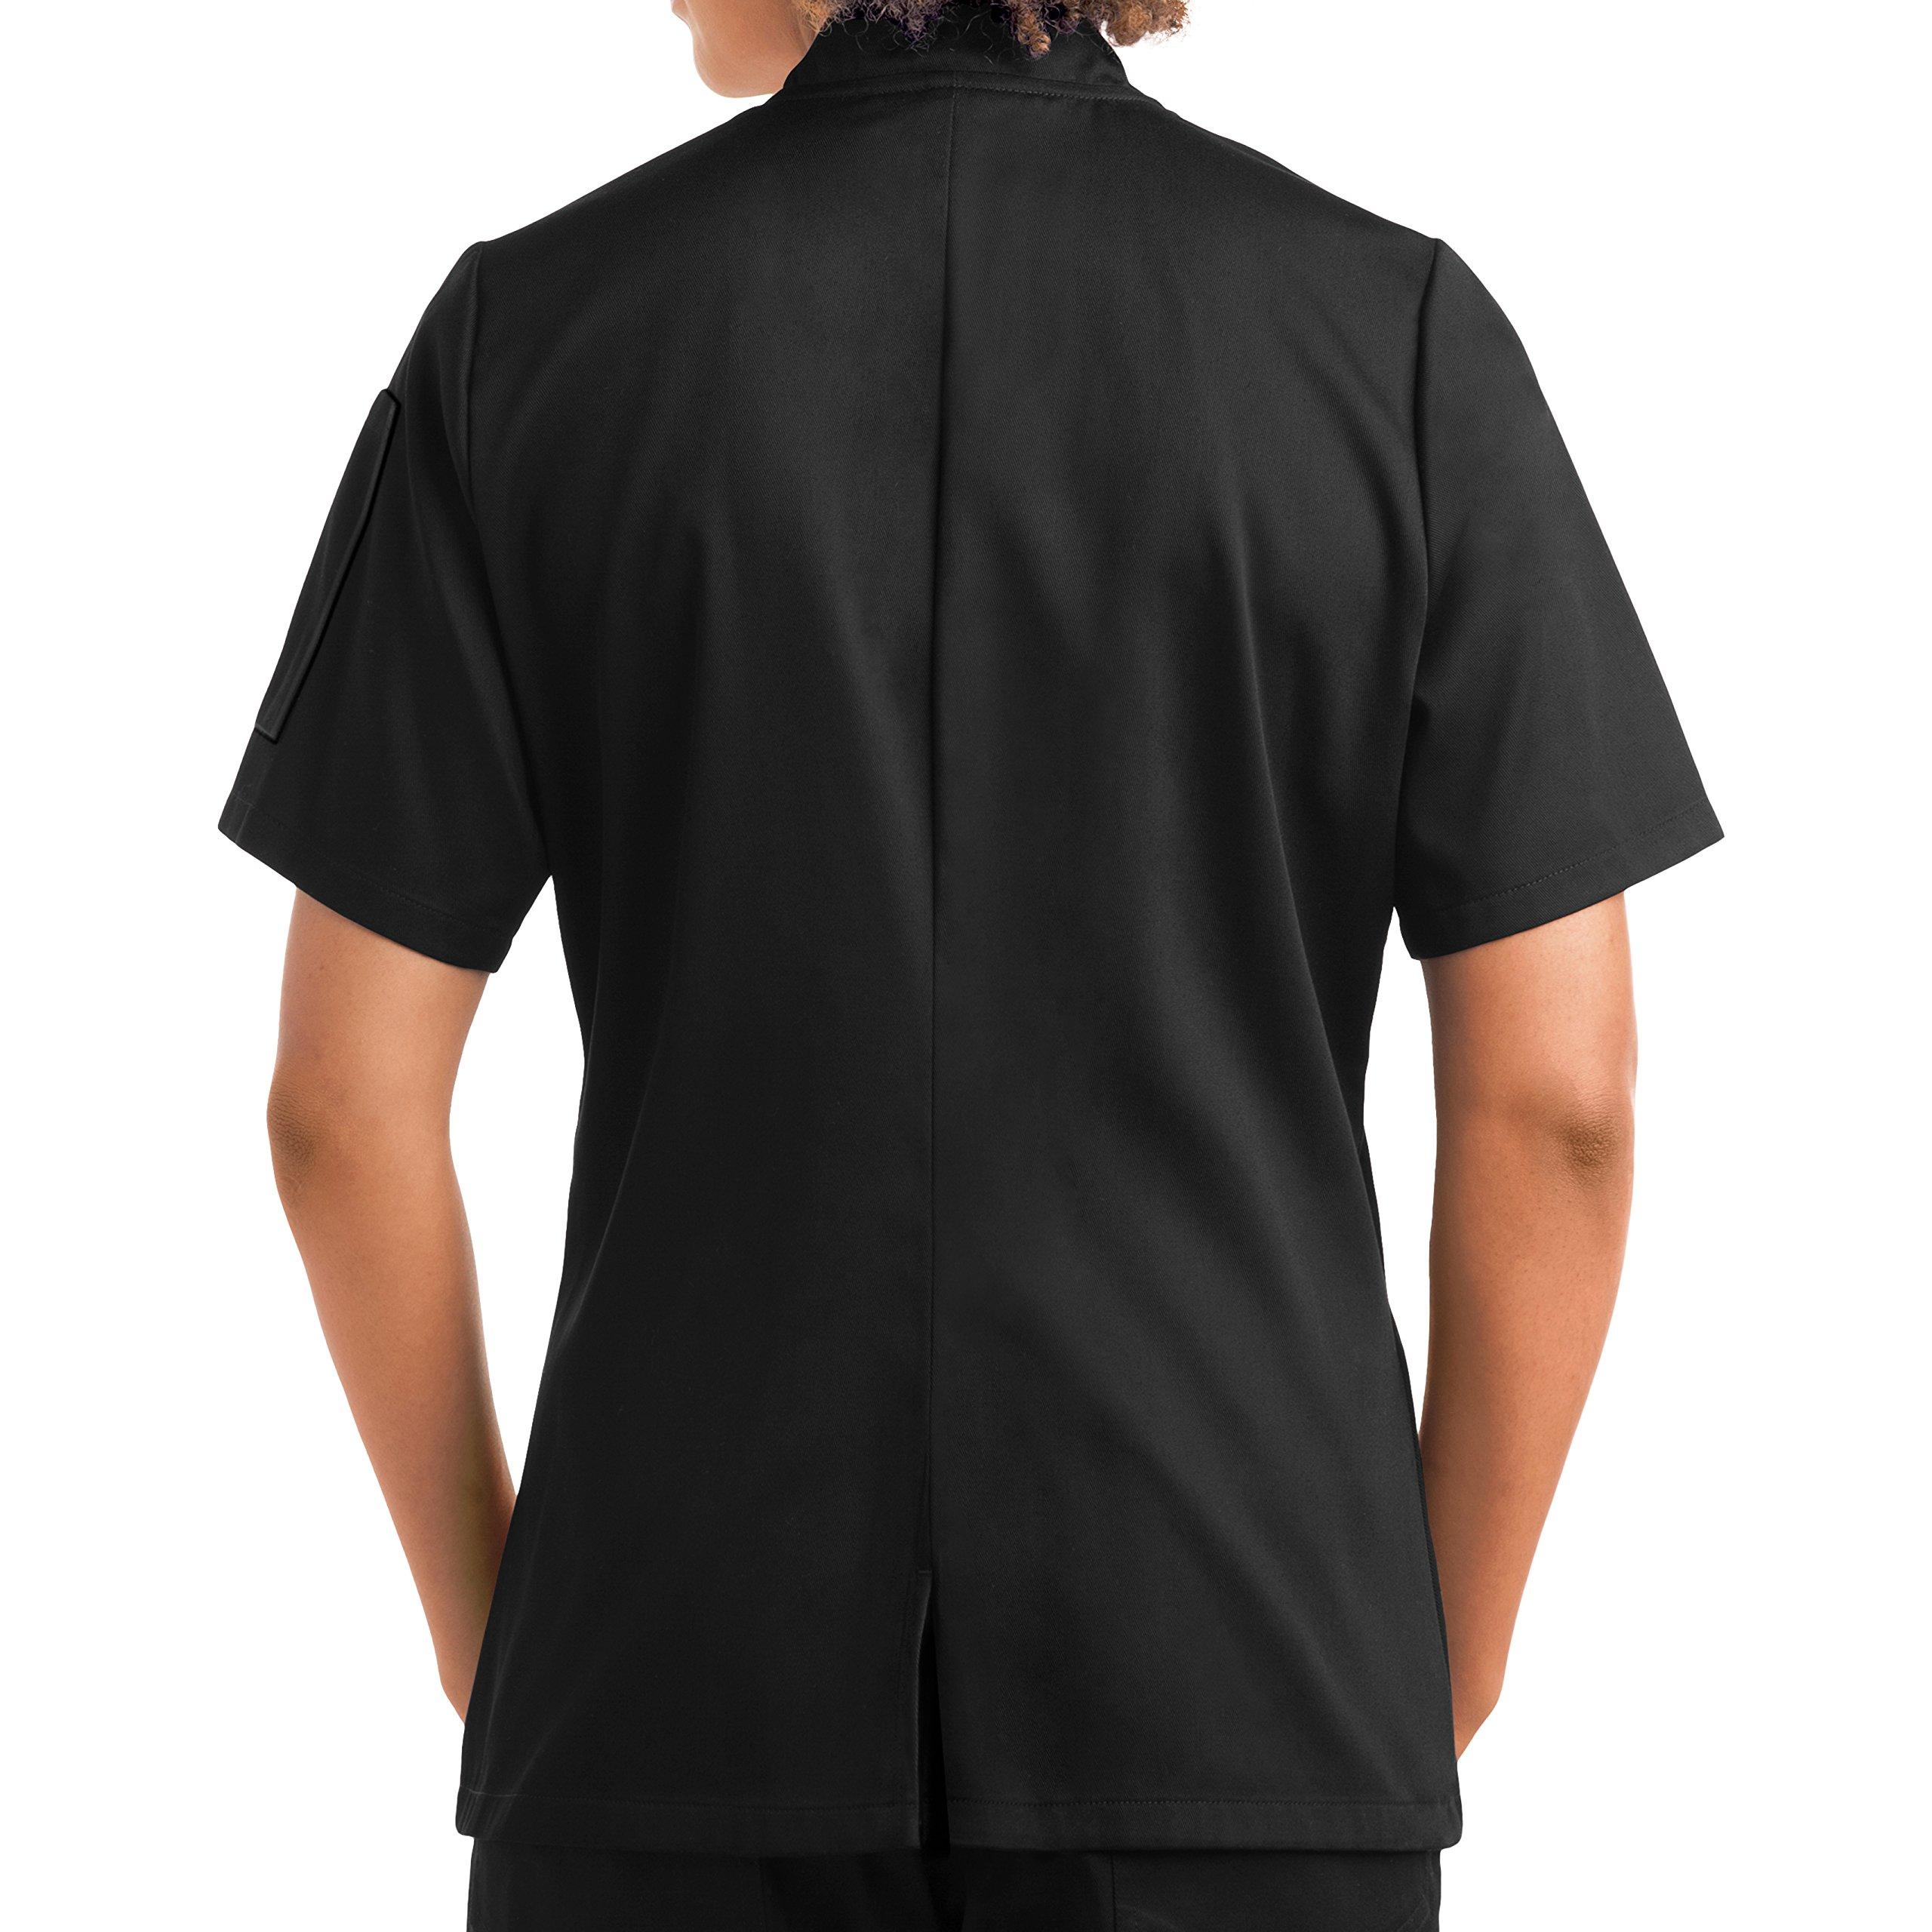 On The Line Women's Short Sleeve Chef Coat/Double Breasted/Plastic Button Reversible Front Closure (S-2X, 2 Colors) (Small, Black) by On The Line (Image #3)